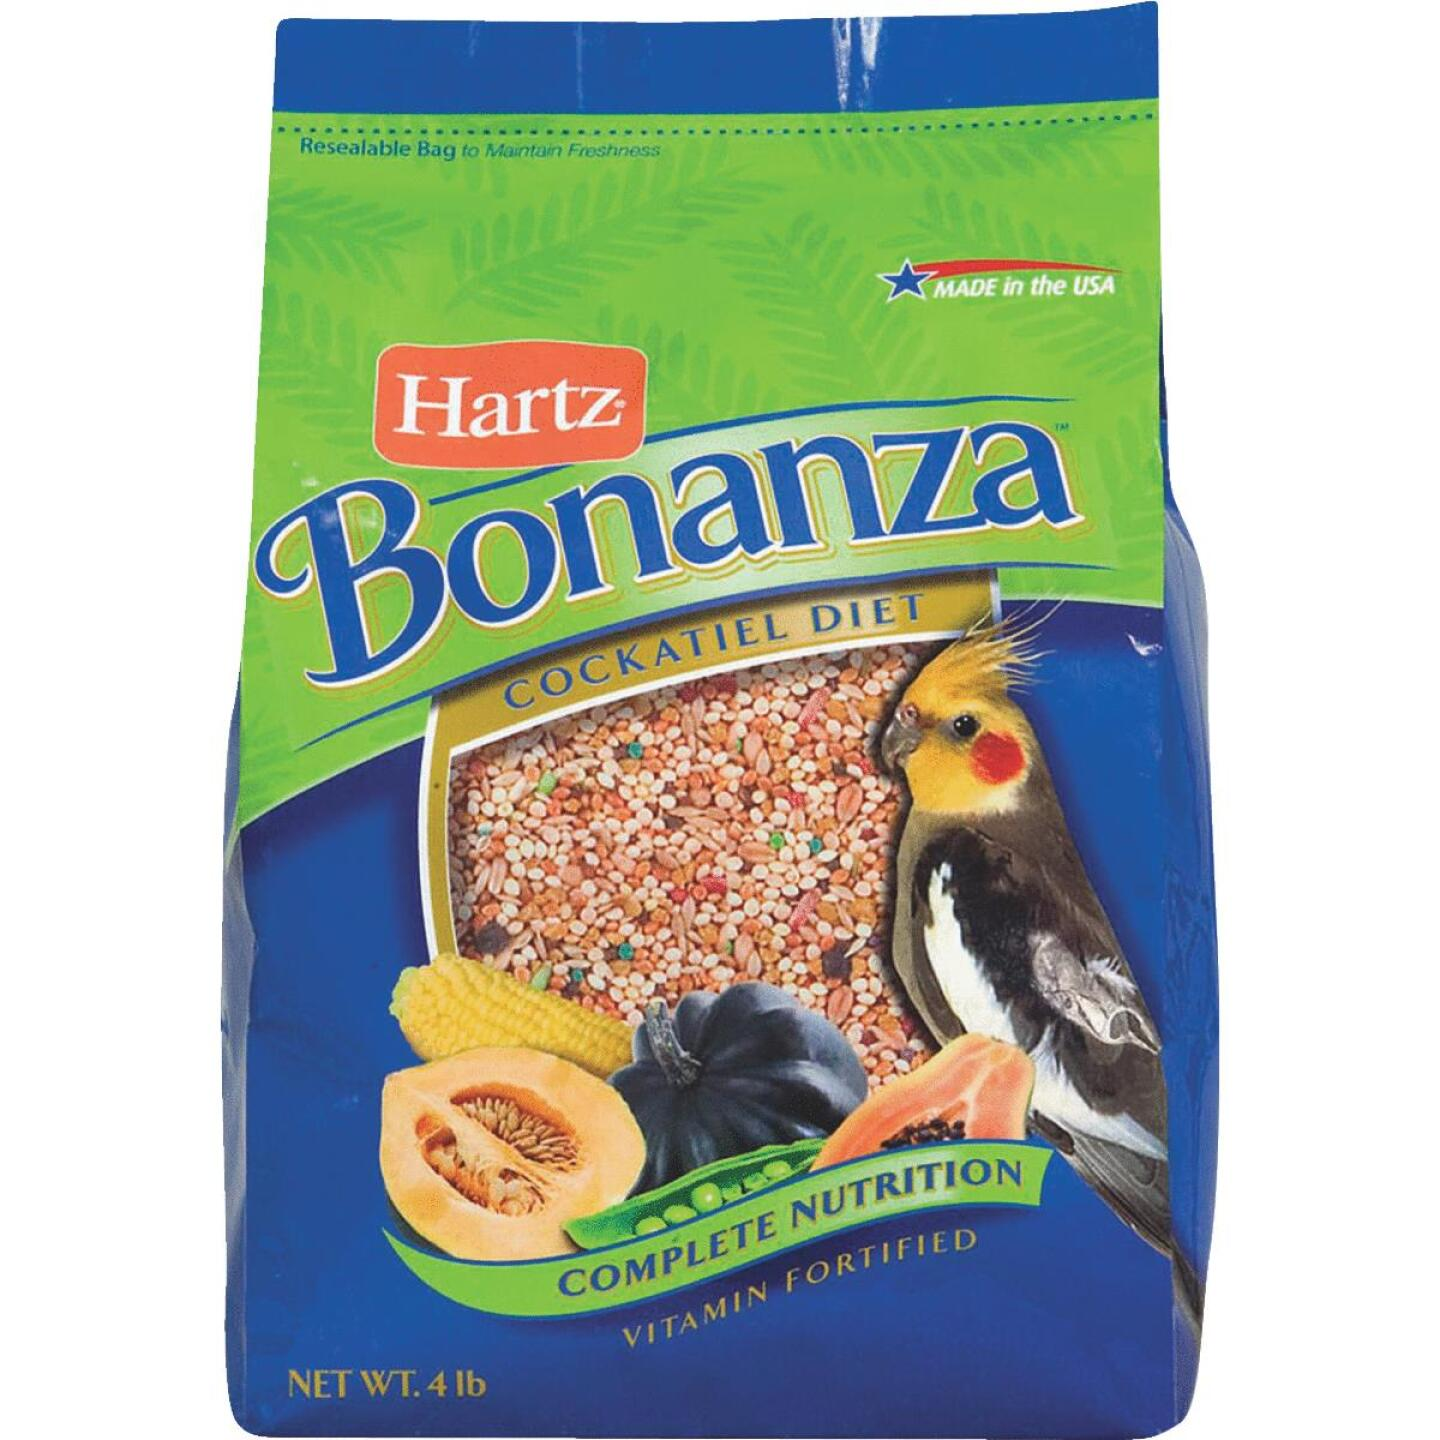 Bonanza 4 Lb. Complete Nutrition Cockatiel and Medium Beak Gourmet Bird Food  Image 1